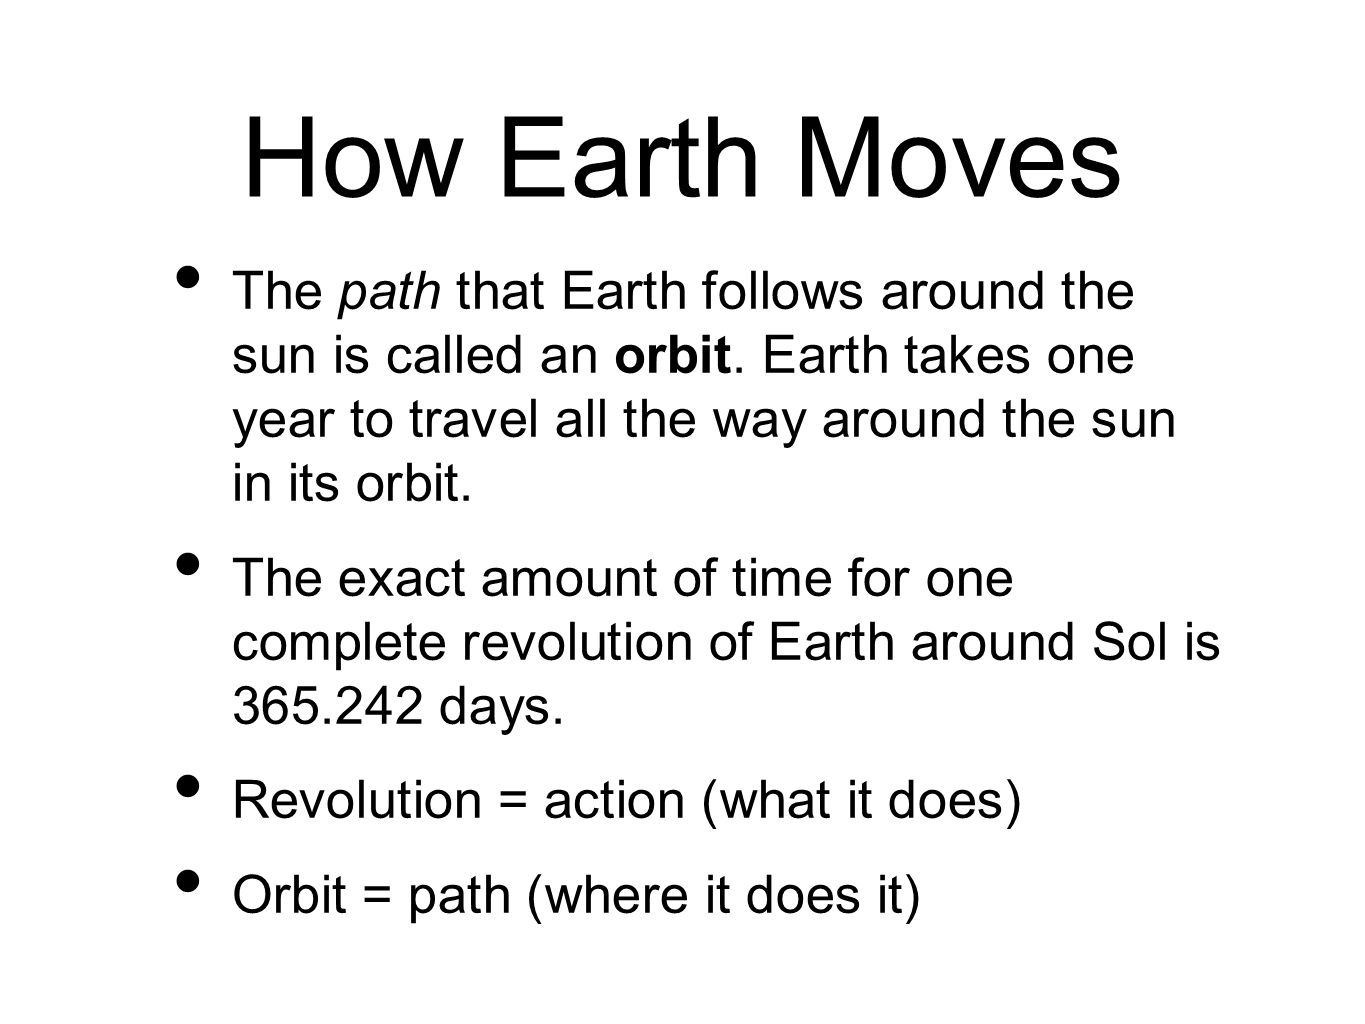 How Earth Moves The path that Earth follows around the sun is called an orbit.